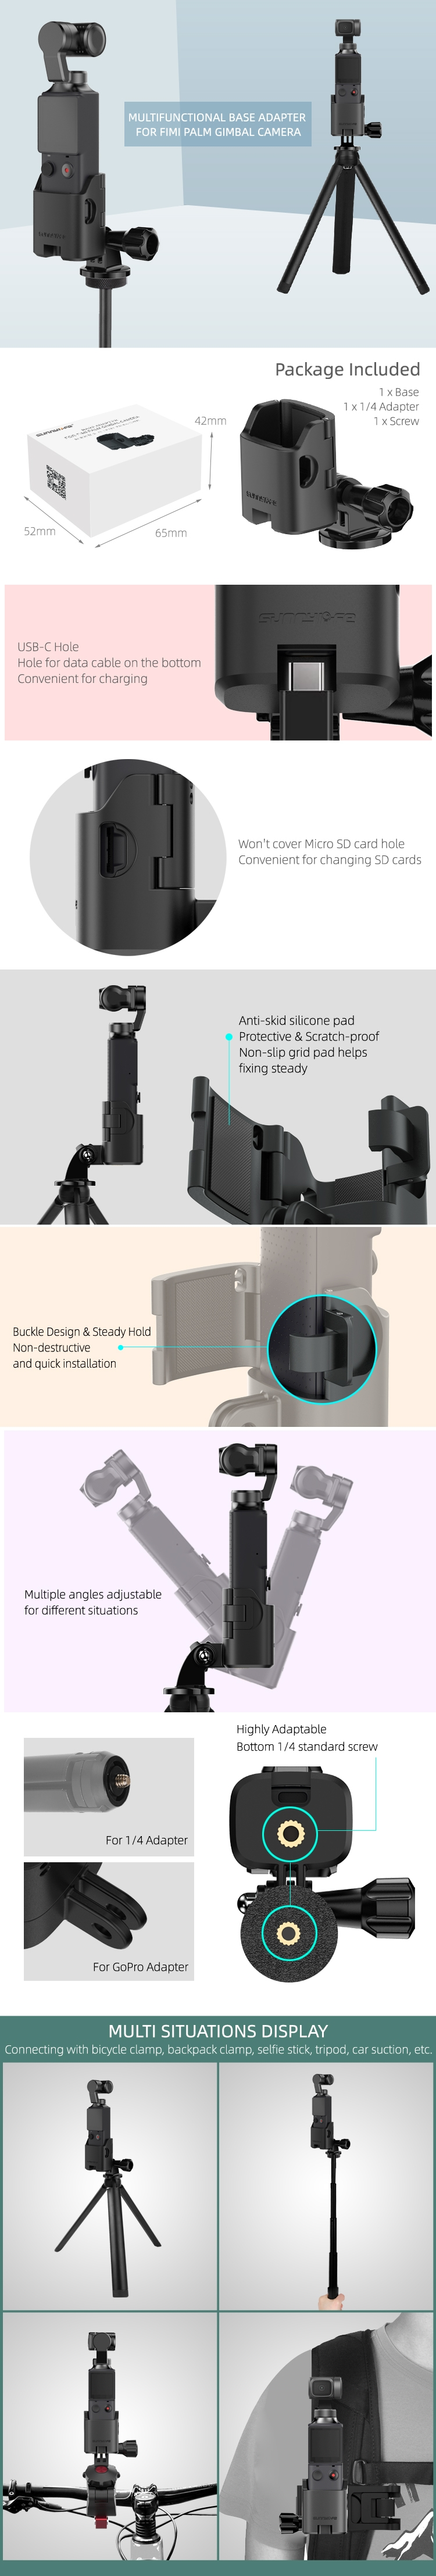 Sunnylife Base Adapter Backpack Clamp Tripod Connecting Accessories for FIMI PALM Gimbal Camera Accessories